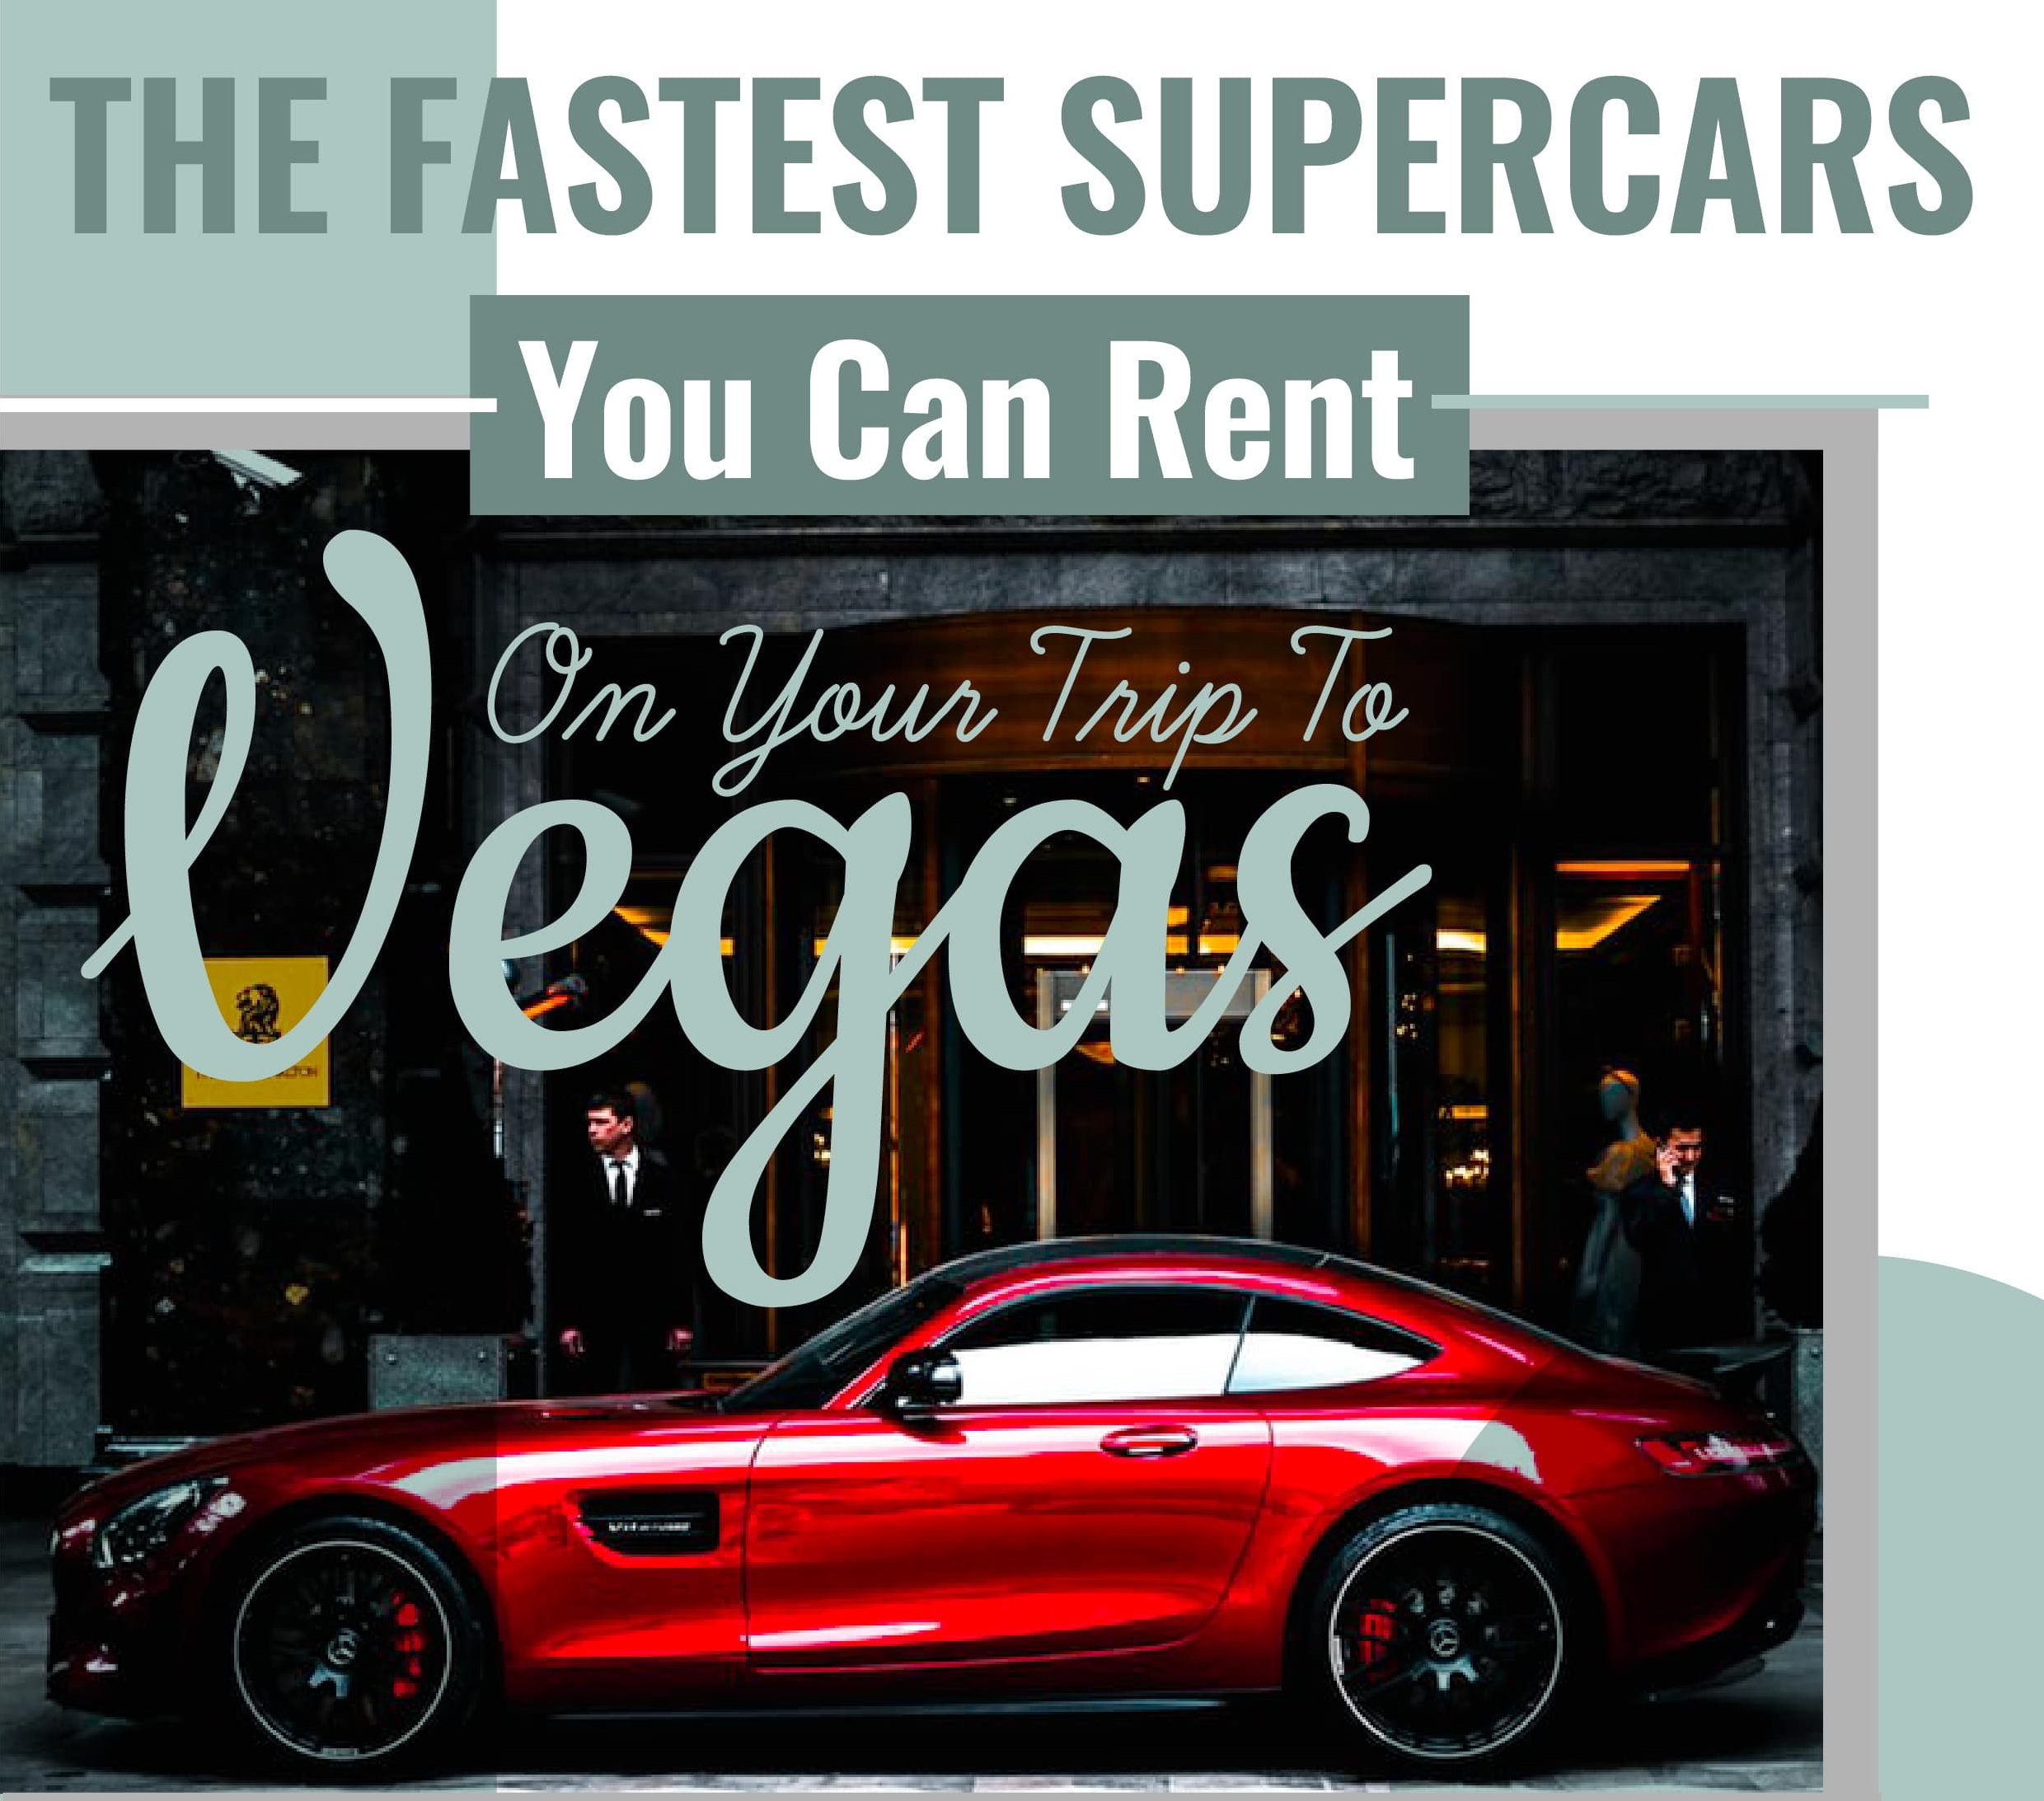 The Fastest Super Cars You Can Rent On Your Trip To Vegas